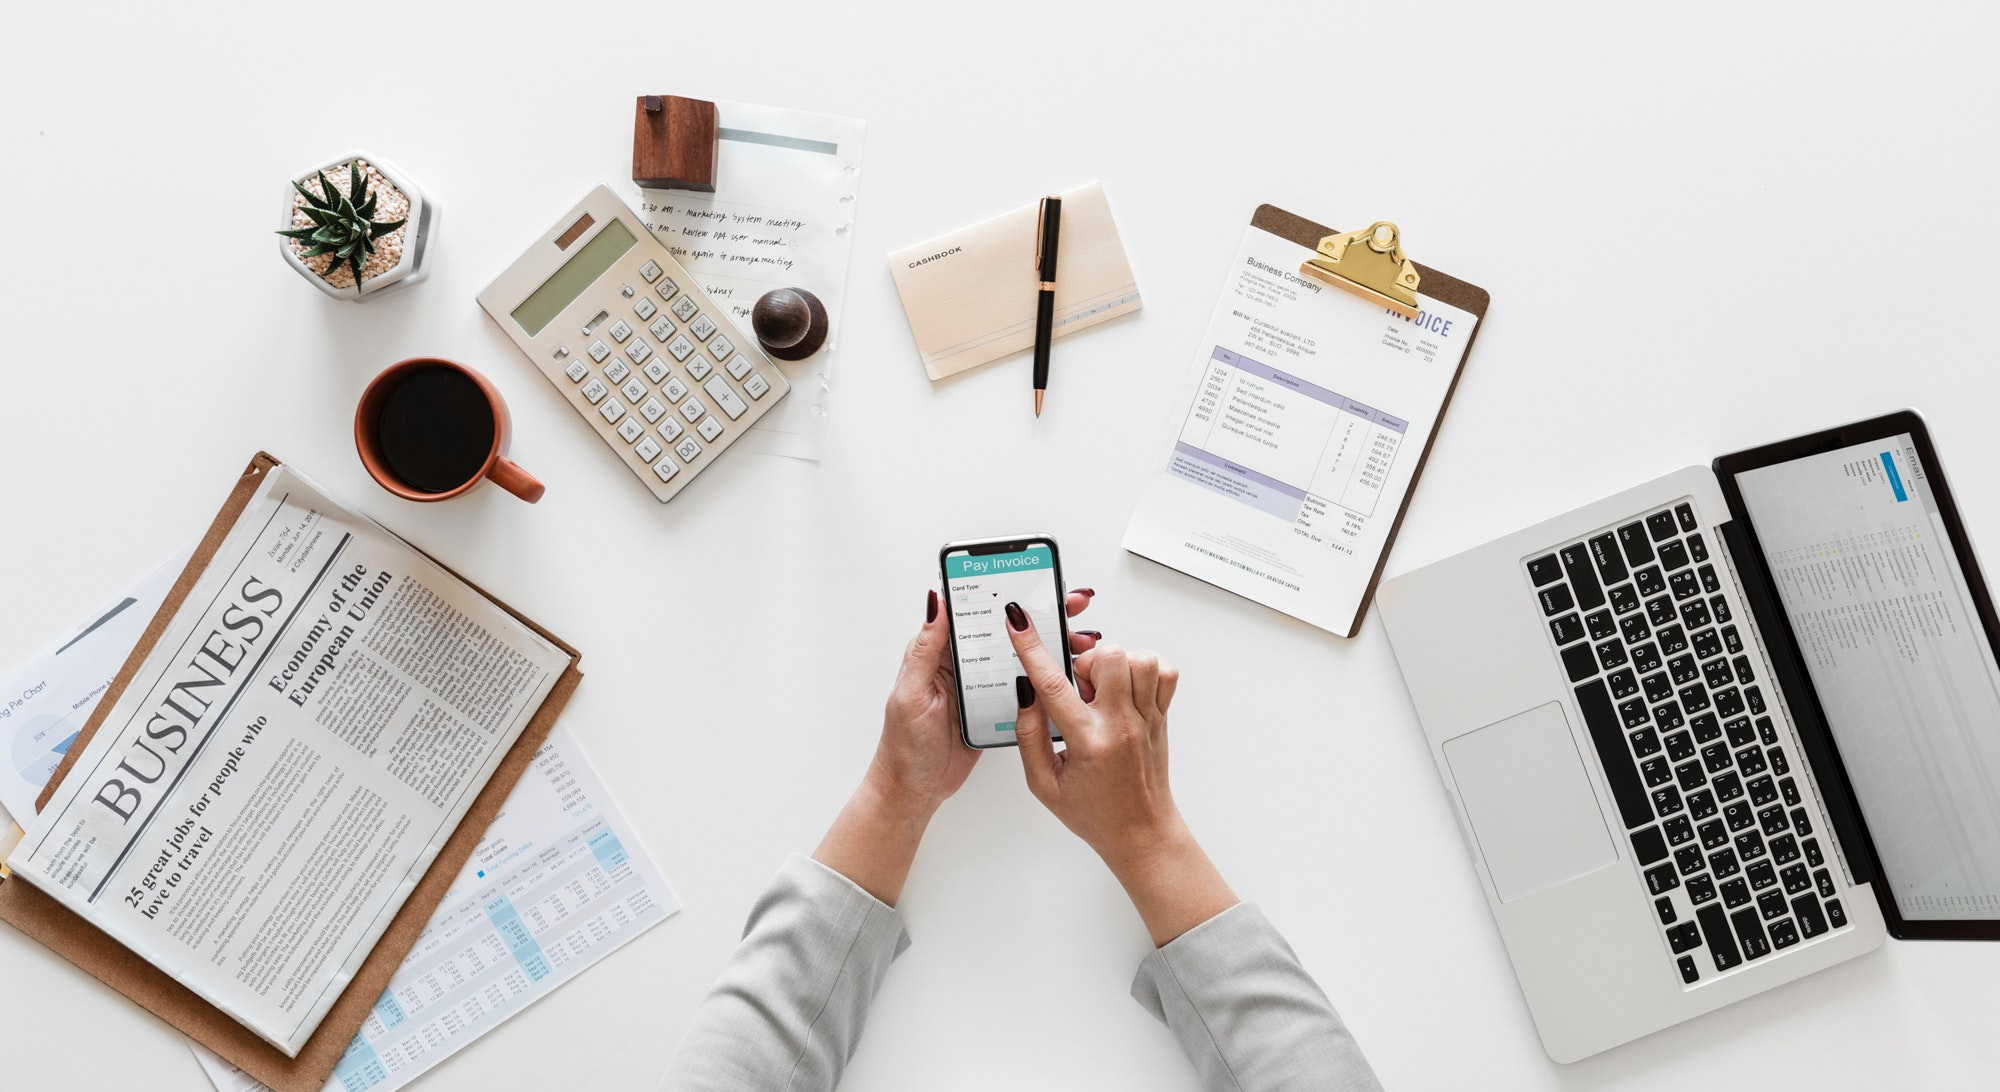 Why accountants should embrace technology